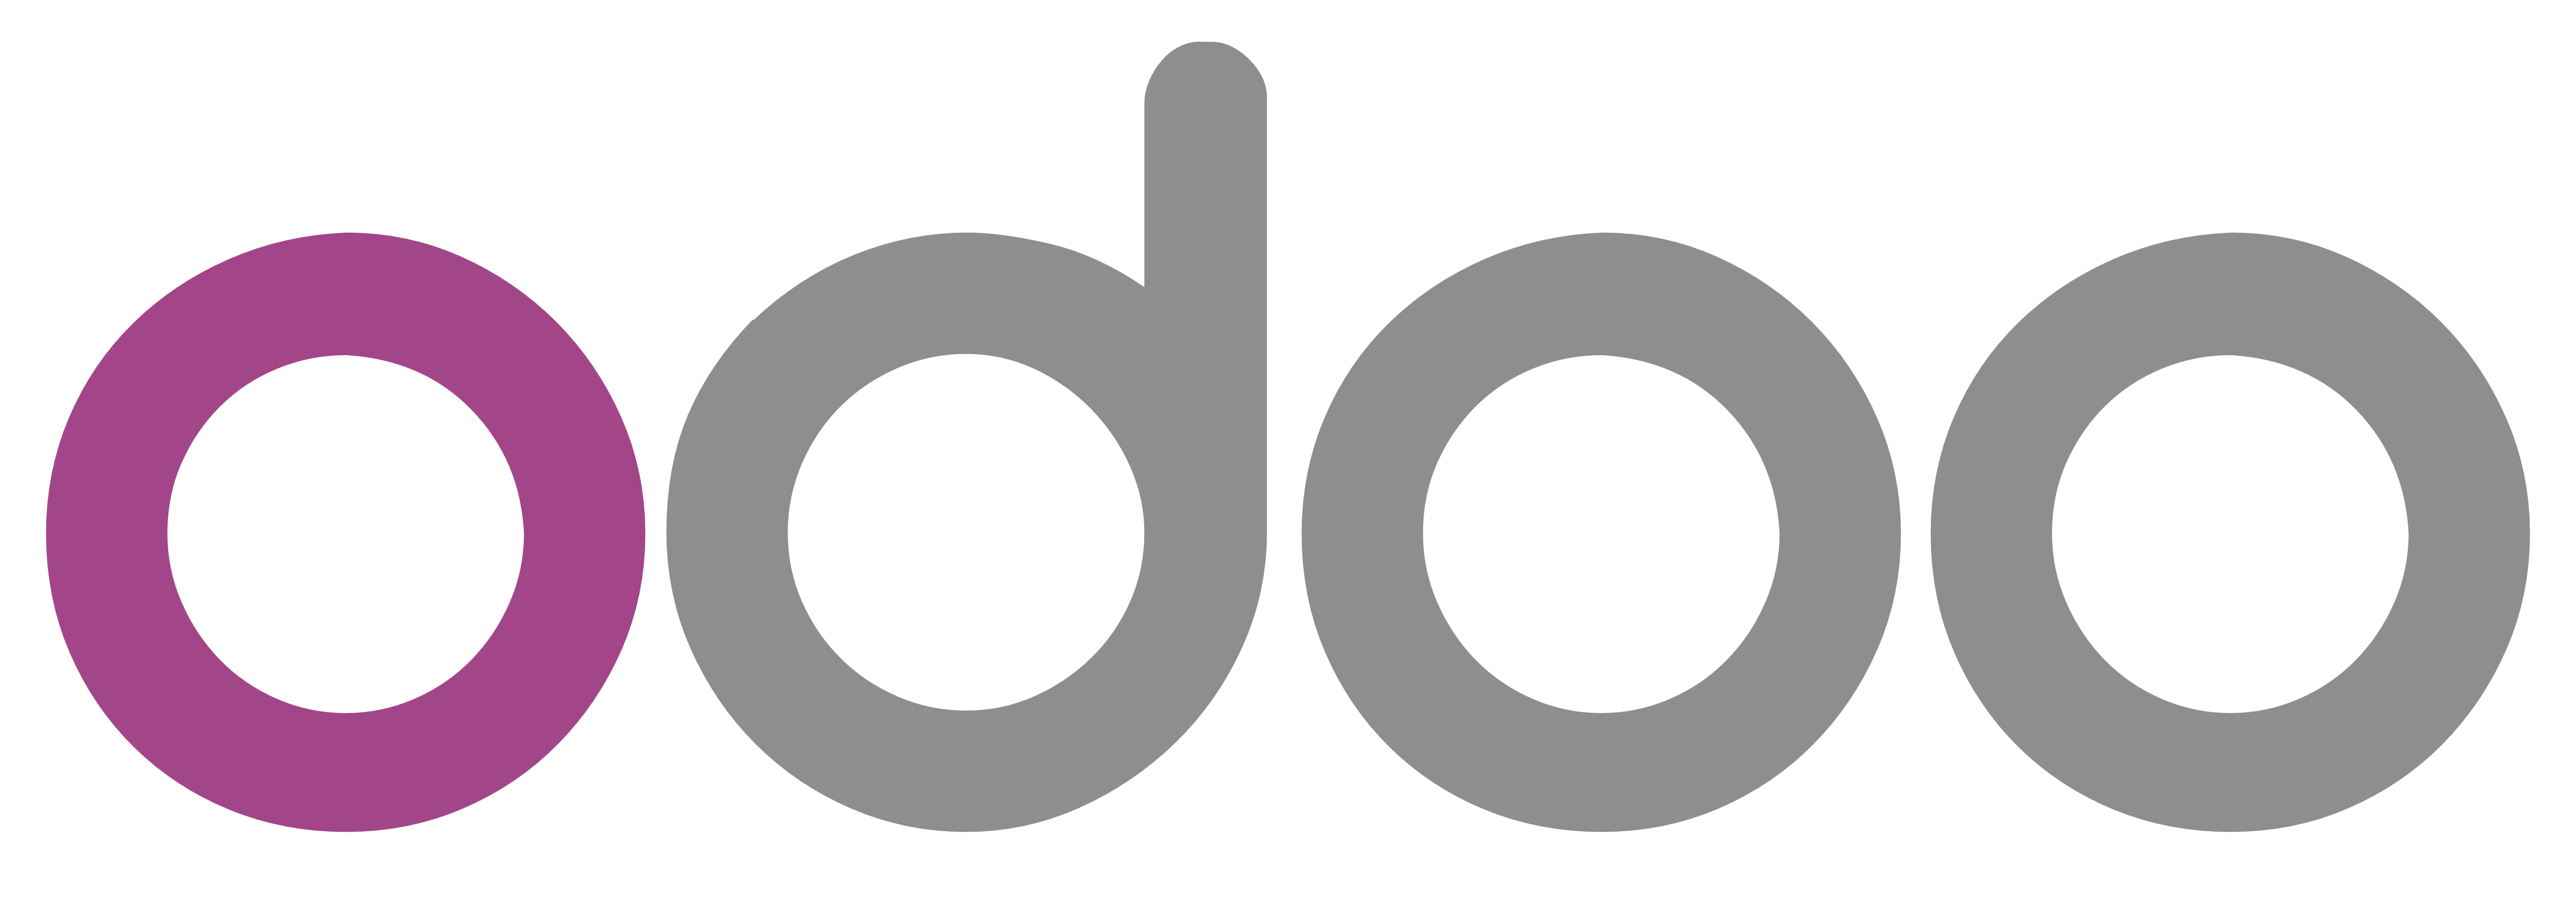 Odoo_logo transparent.png